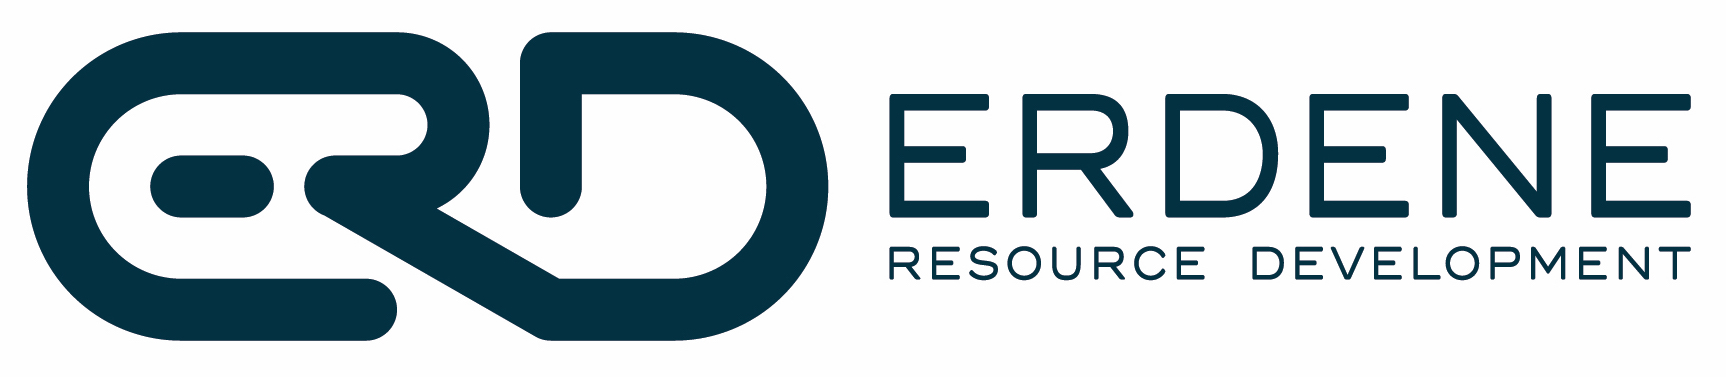 Erdene Commences Bayan Khundii Gold Project Bankable Feasibility Study and Provides Technical, Permitting and Exploration Update